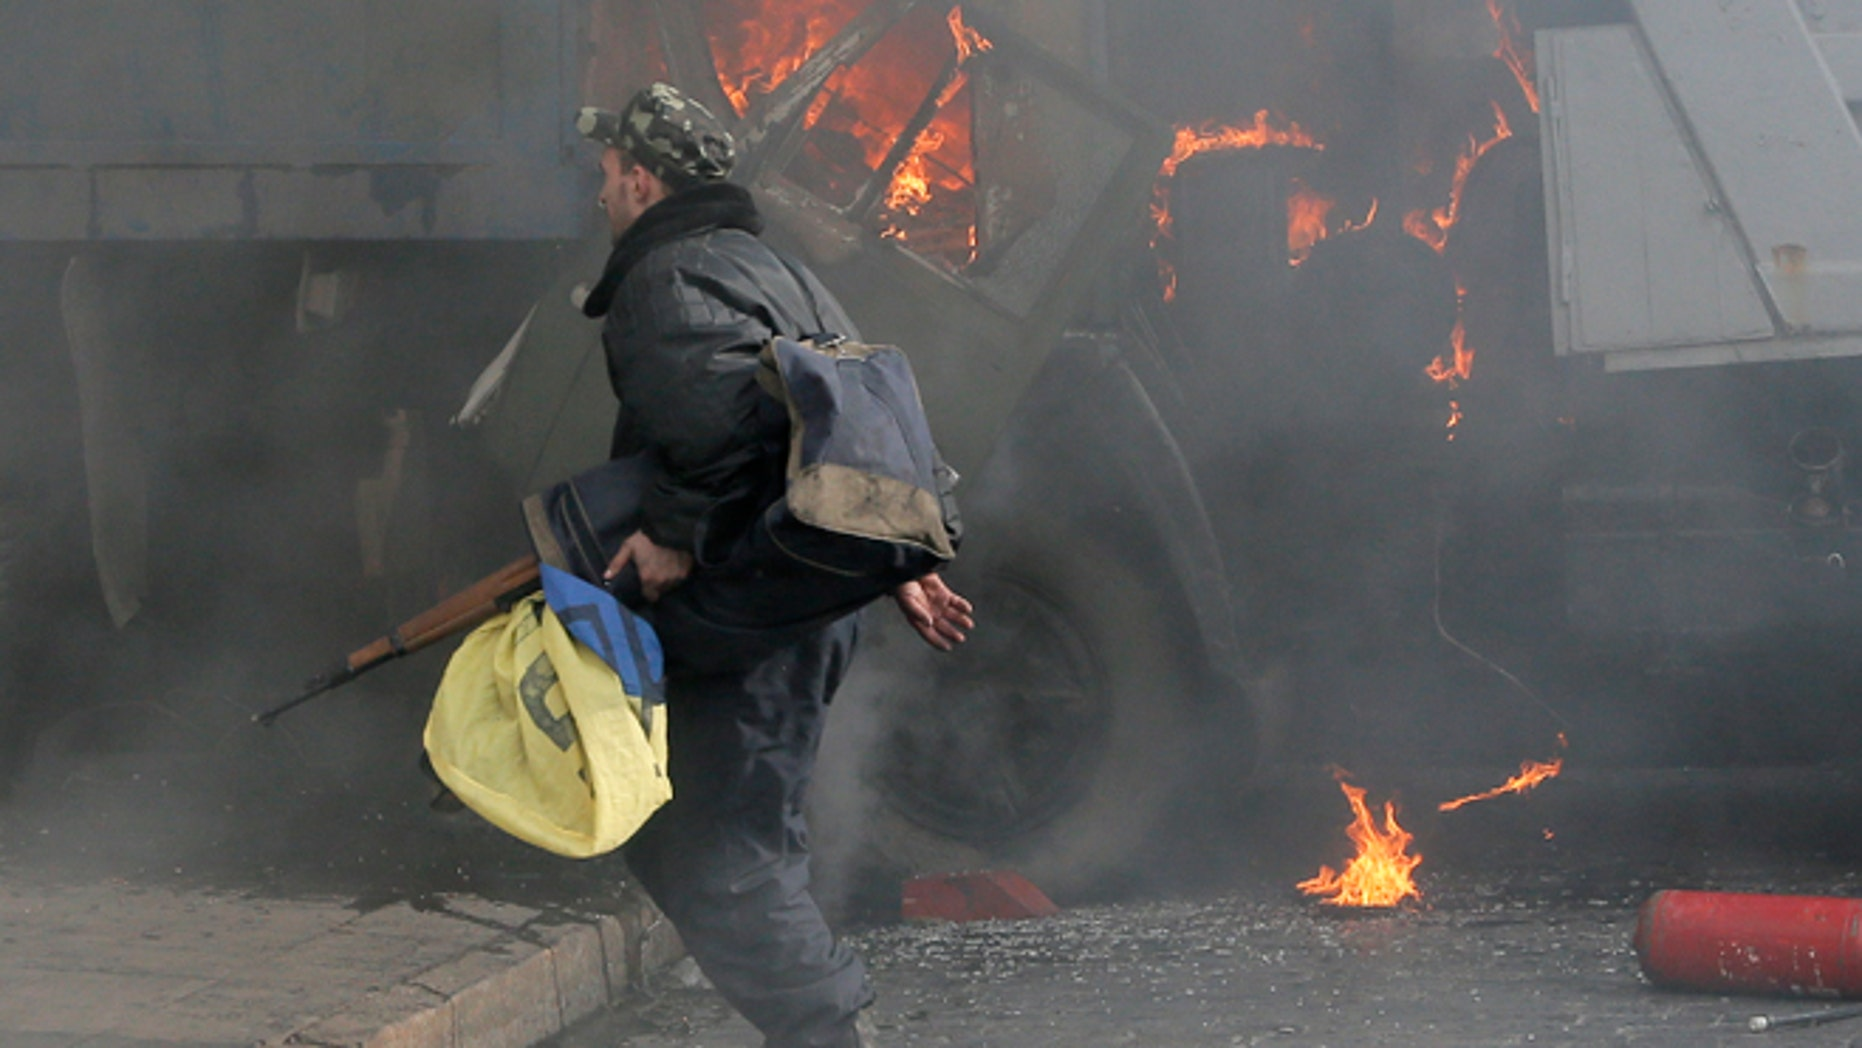 Feb. 21, 2014 In this file photo, a man with a gun runs along a street during a clash between opposition protesters and riot police at a burning barricades near the Presidential office in Kiev, Ukraine.